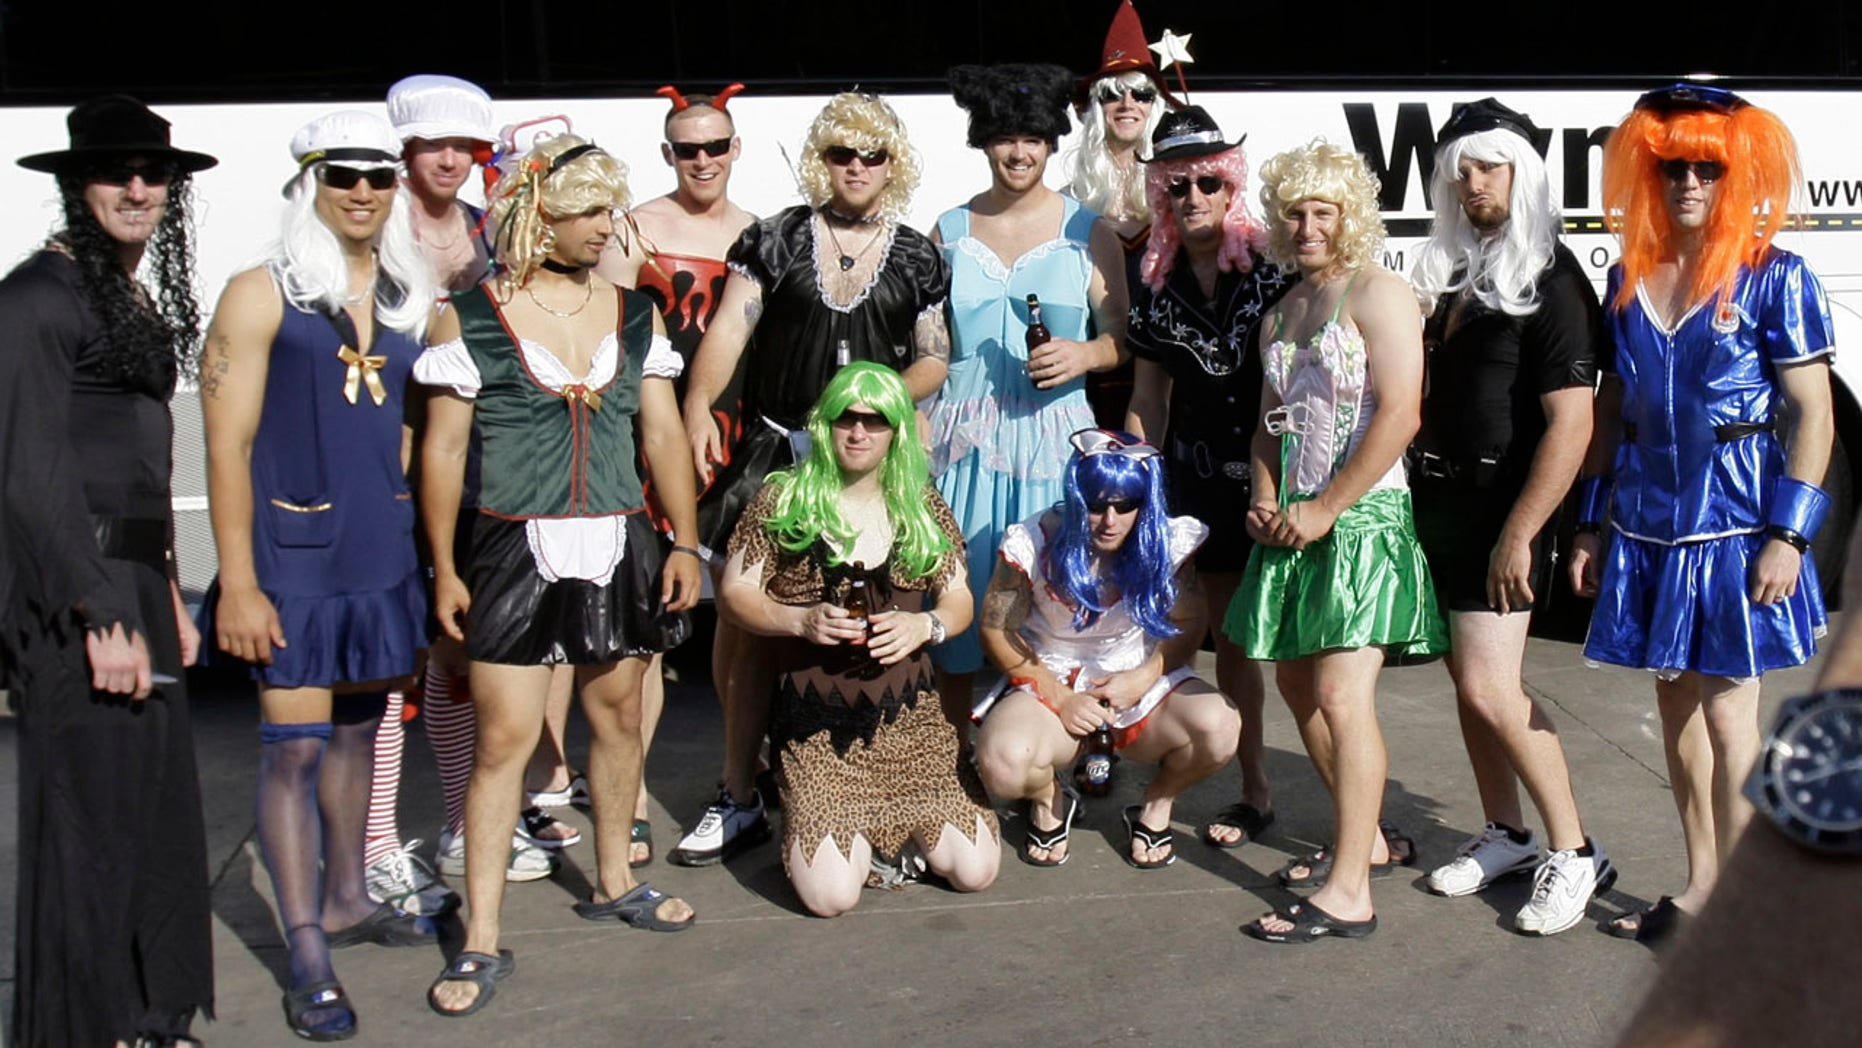 FILE - In this Sept. 24, 2008, file photo, Oakland Athletics rookie players dressed in costumes line up for a group photo before boarding the team bus after their 14-4 loss to the Texas Rangers, in Arlington, Texas.